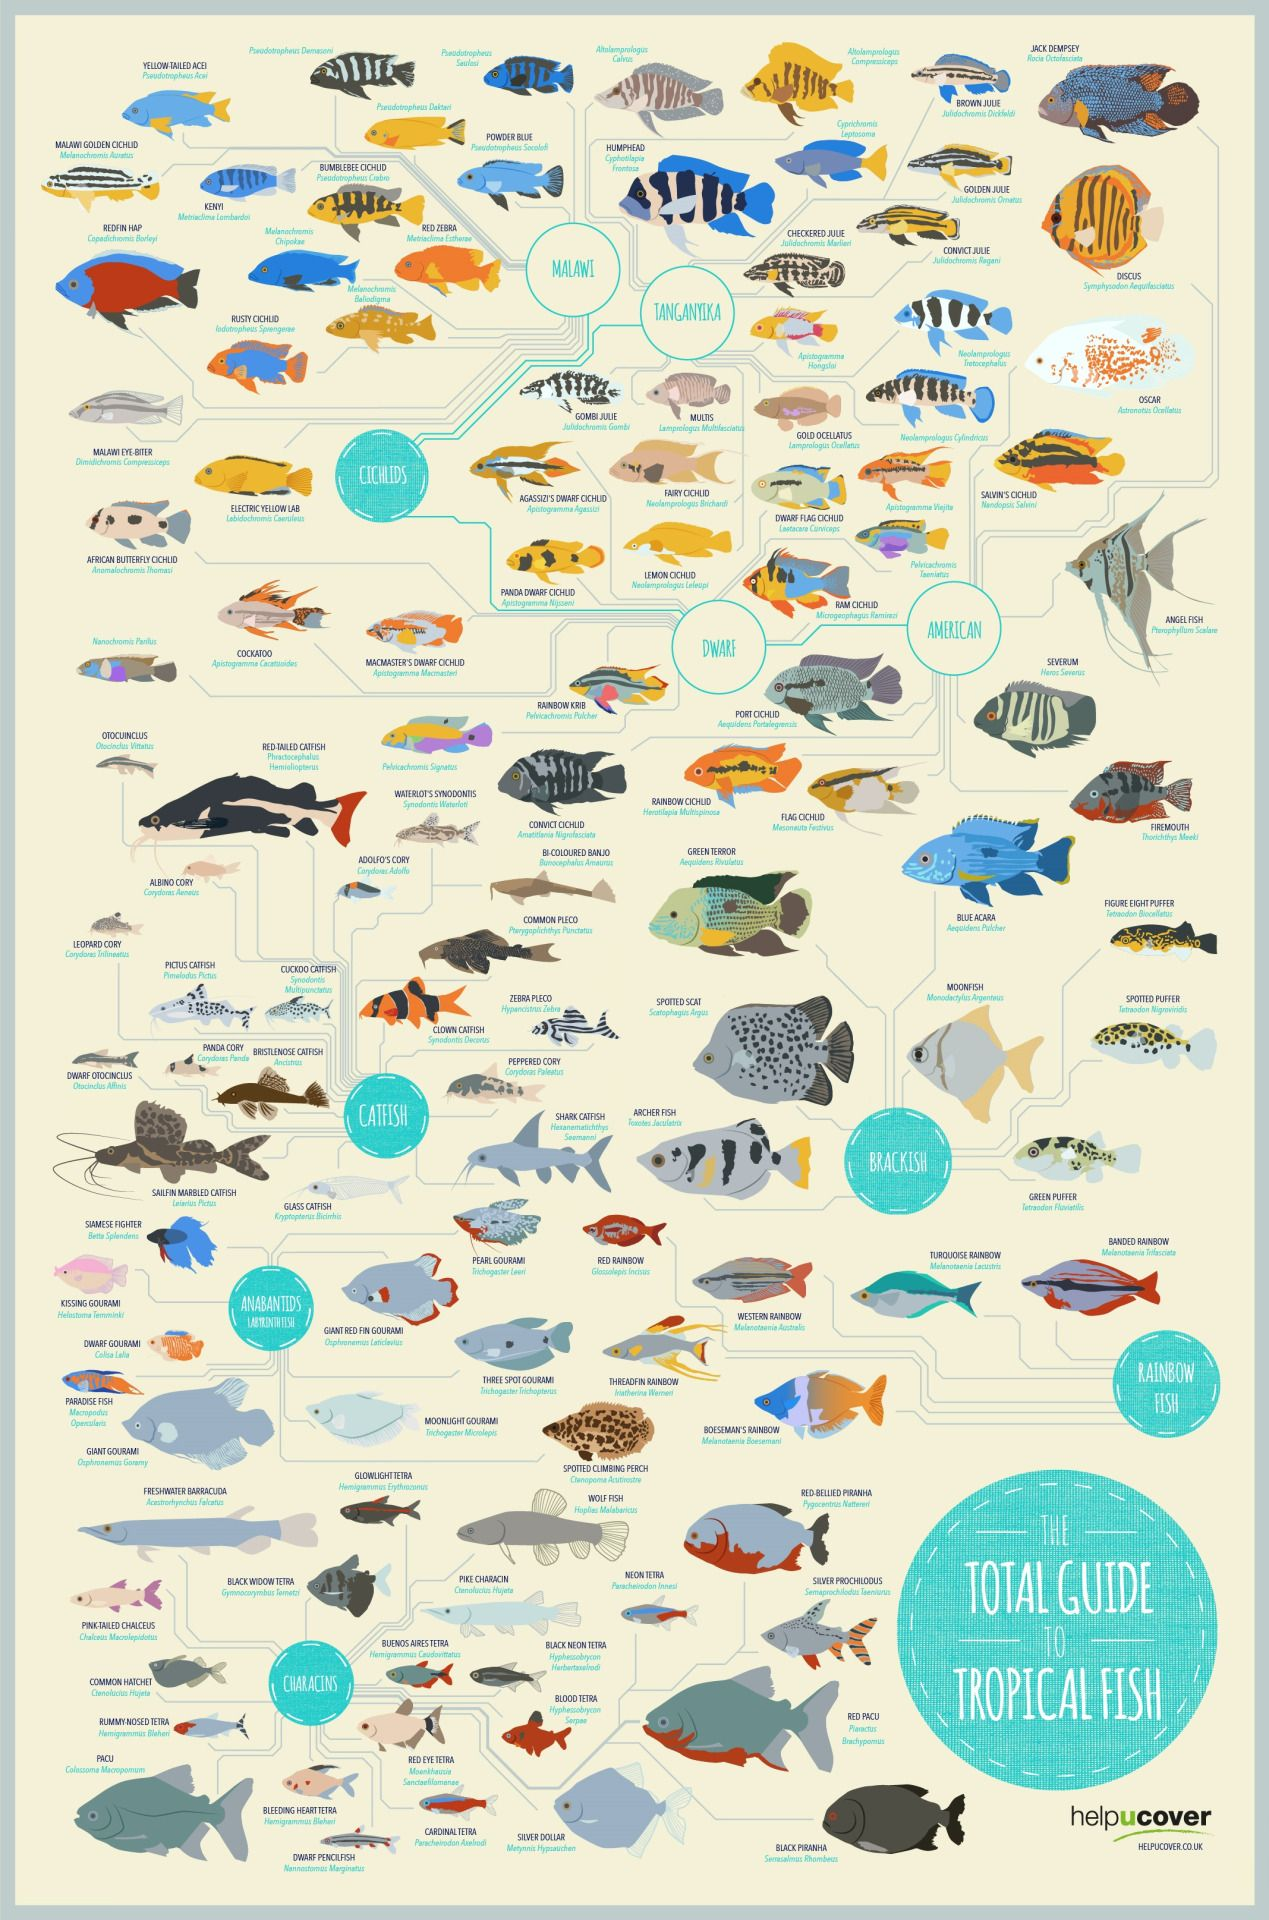 The Total Guide To Tropical Fish With Images Fish Infographic